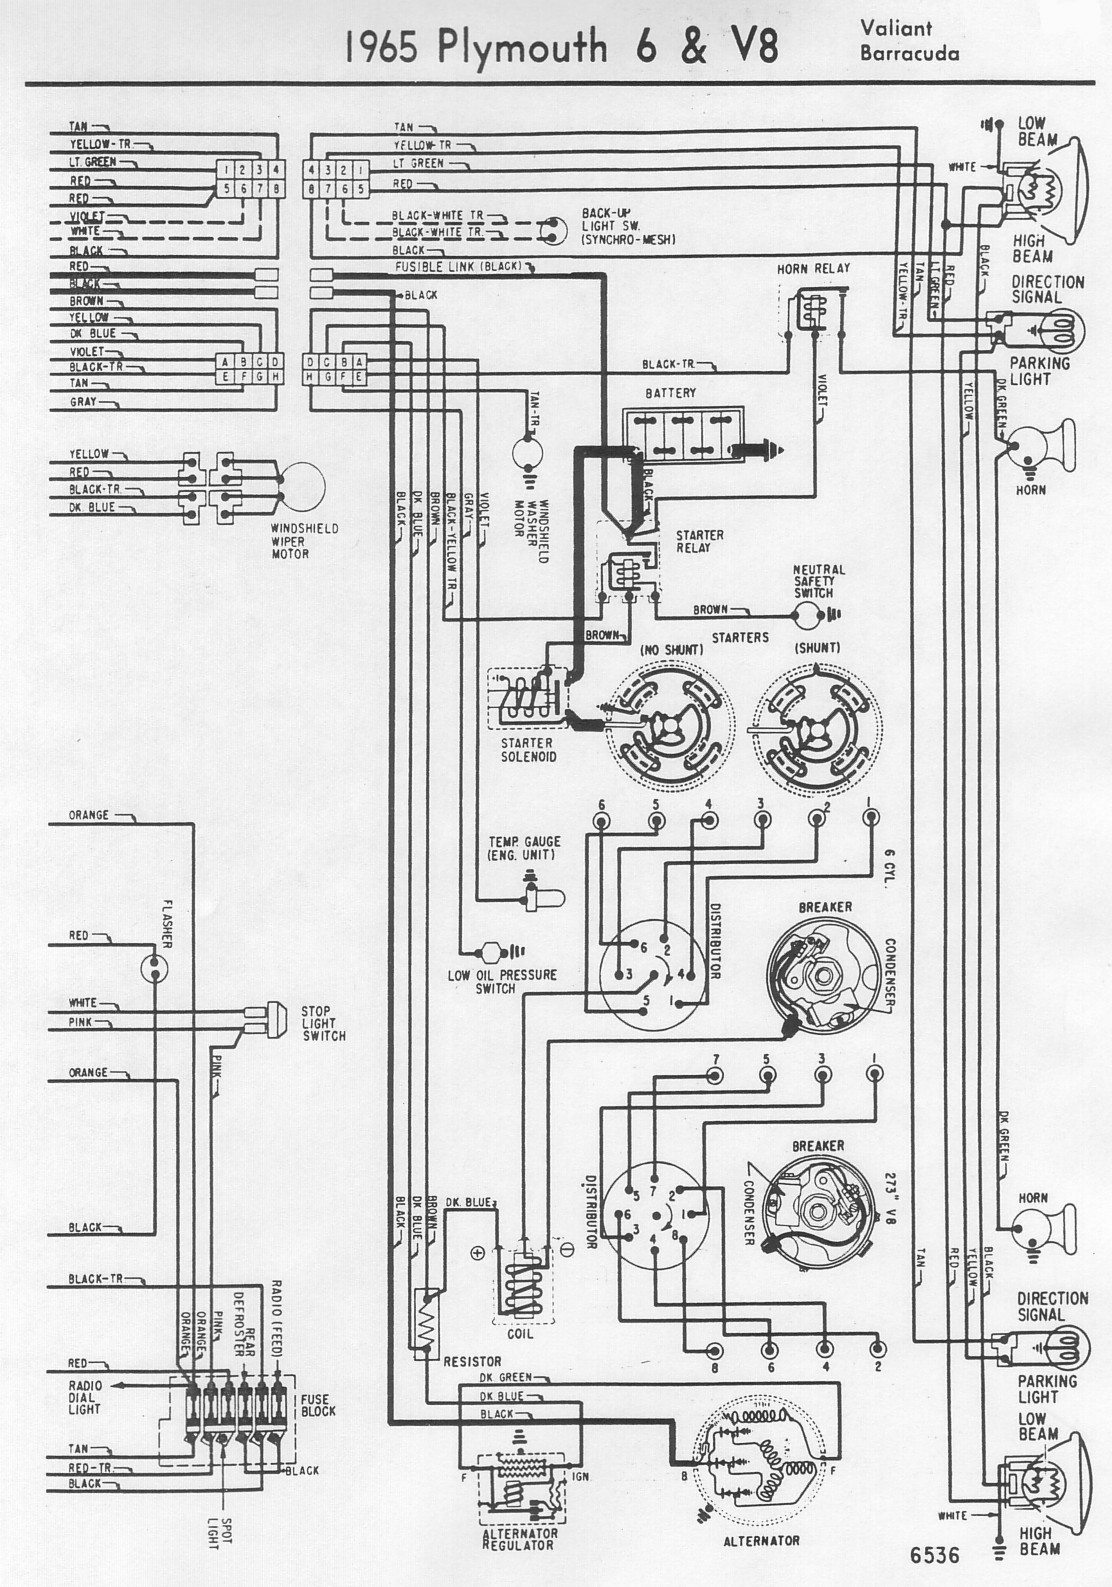 1975 Dodge Valiant Wiring Diagram Schematic Free Fiat Starter Blogs Rh 11 2 Restaurant Freinsheimer Hof De Dakota Electrical